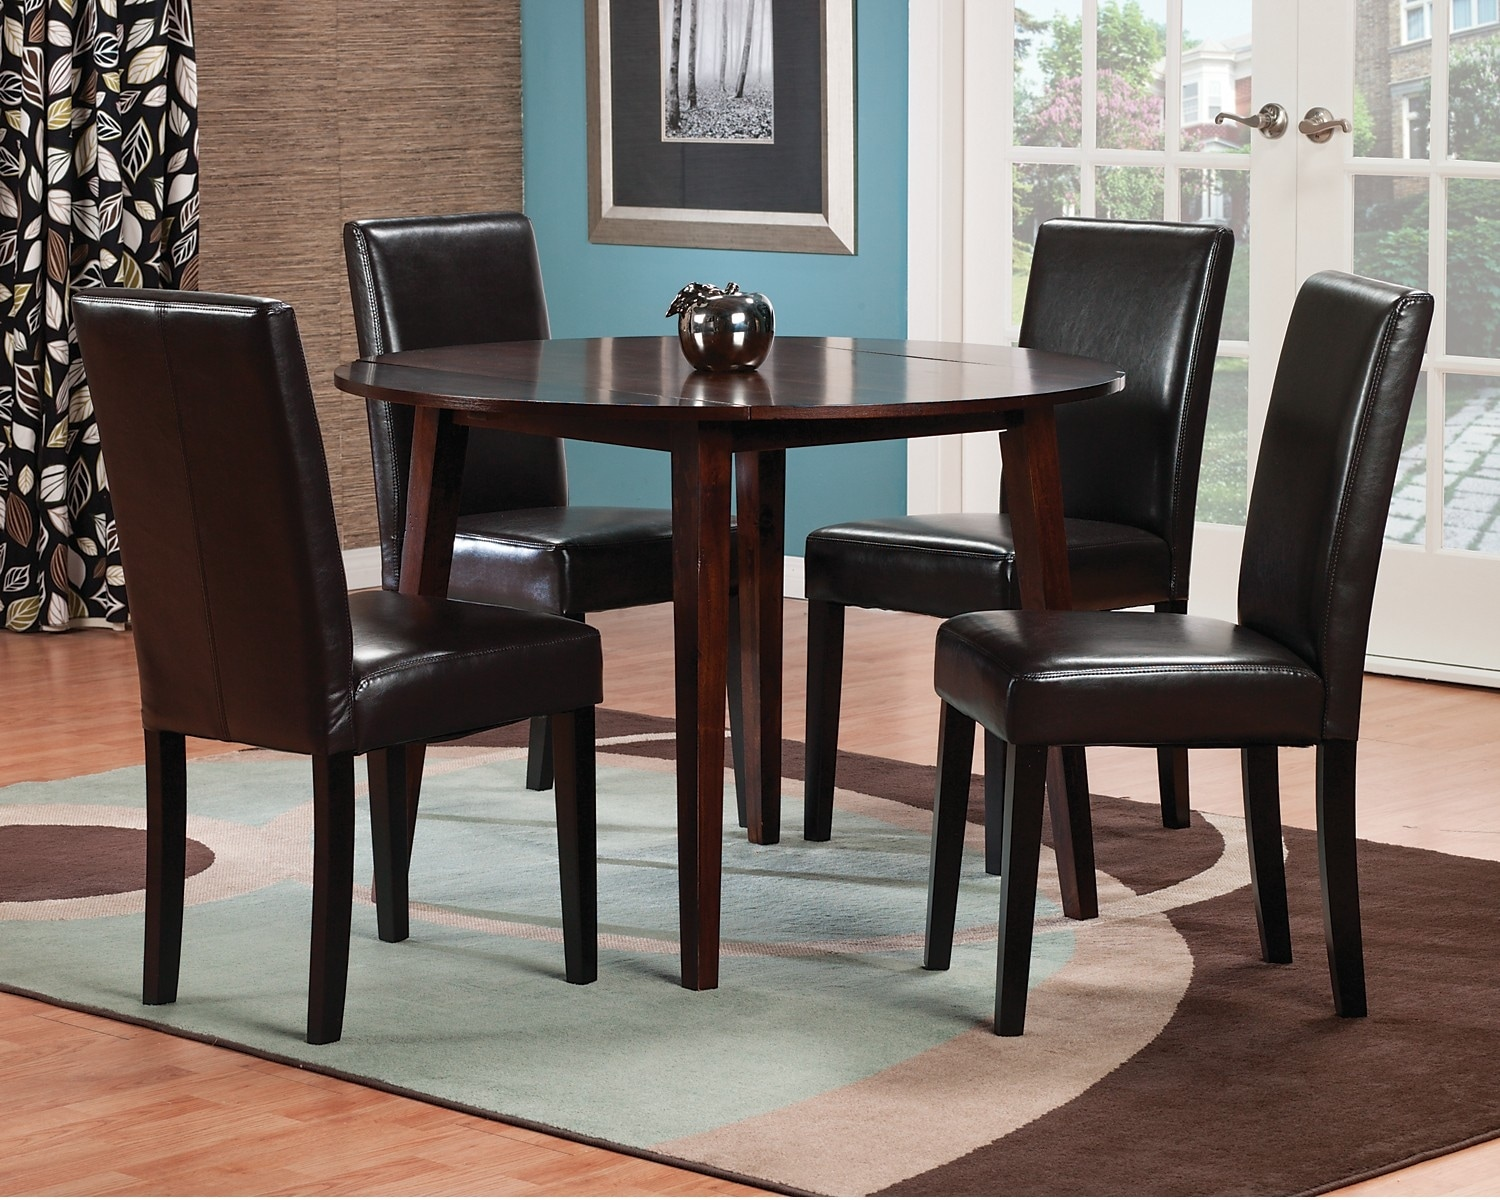 Adara 5-Piece Round Dining Package with Brown Accent Chairs